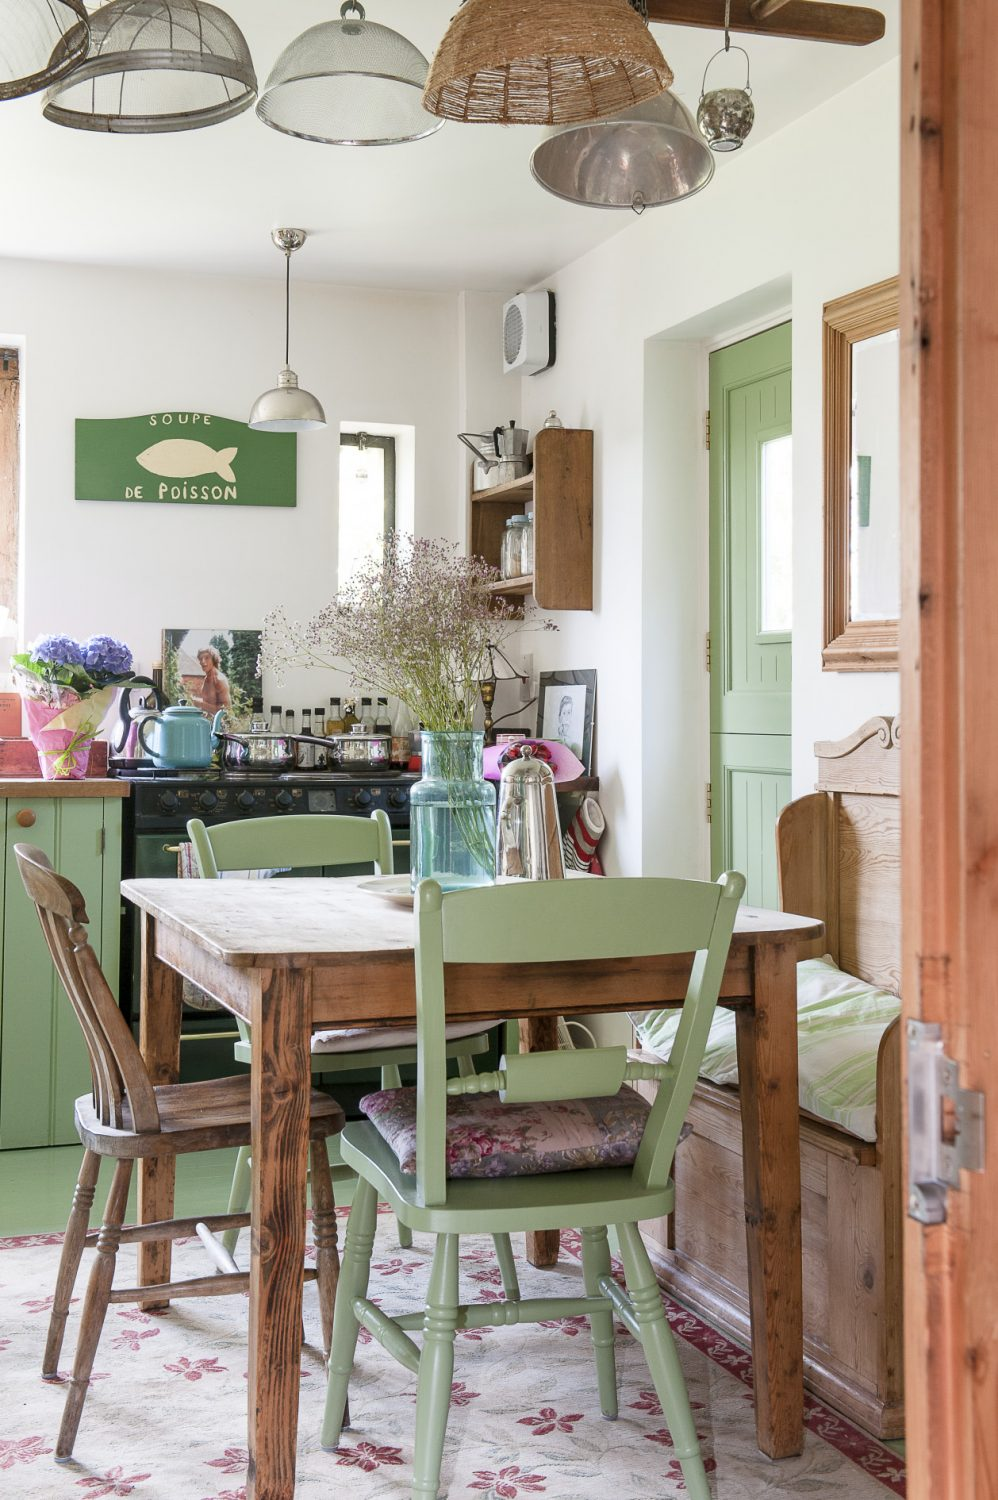 In the kitchen sieves and colanders hang from an old wooden orchard ladder suspended horizontally from the ceiling above the stripped pine dining table